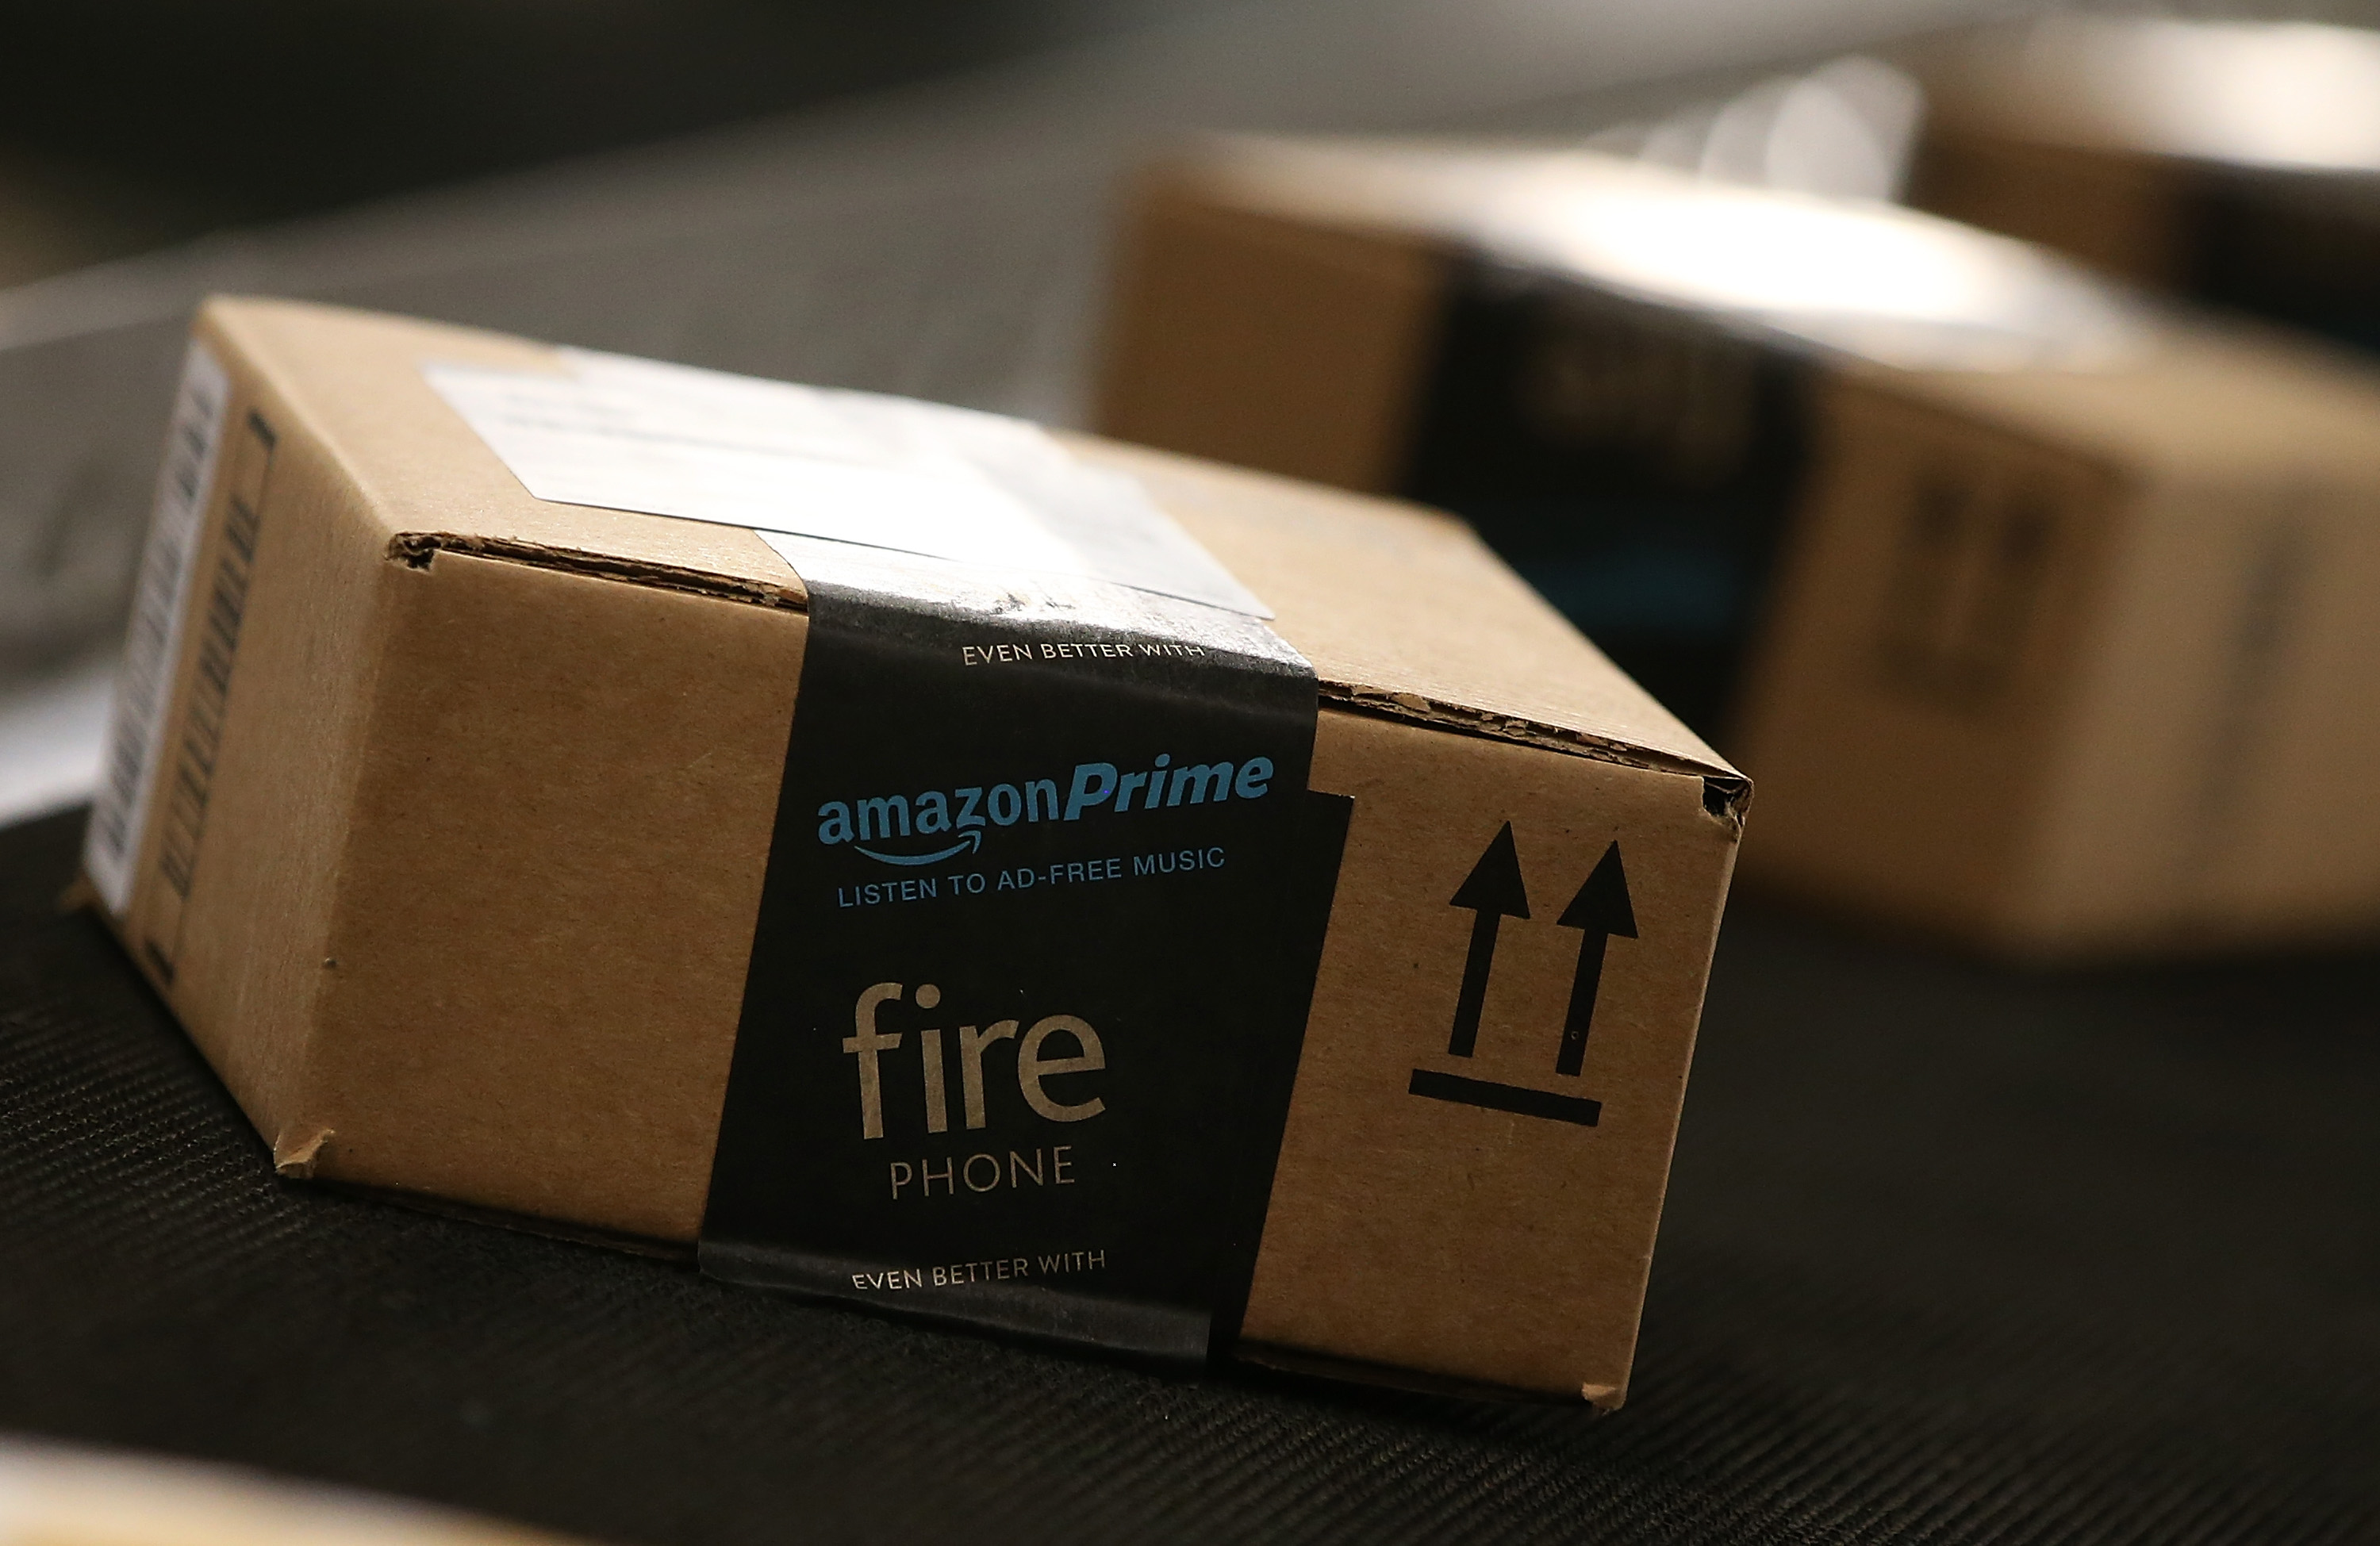 Amazon Prime, now with free same-day deliveries